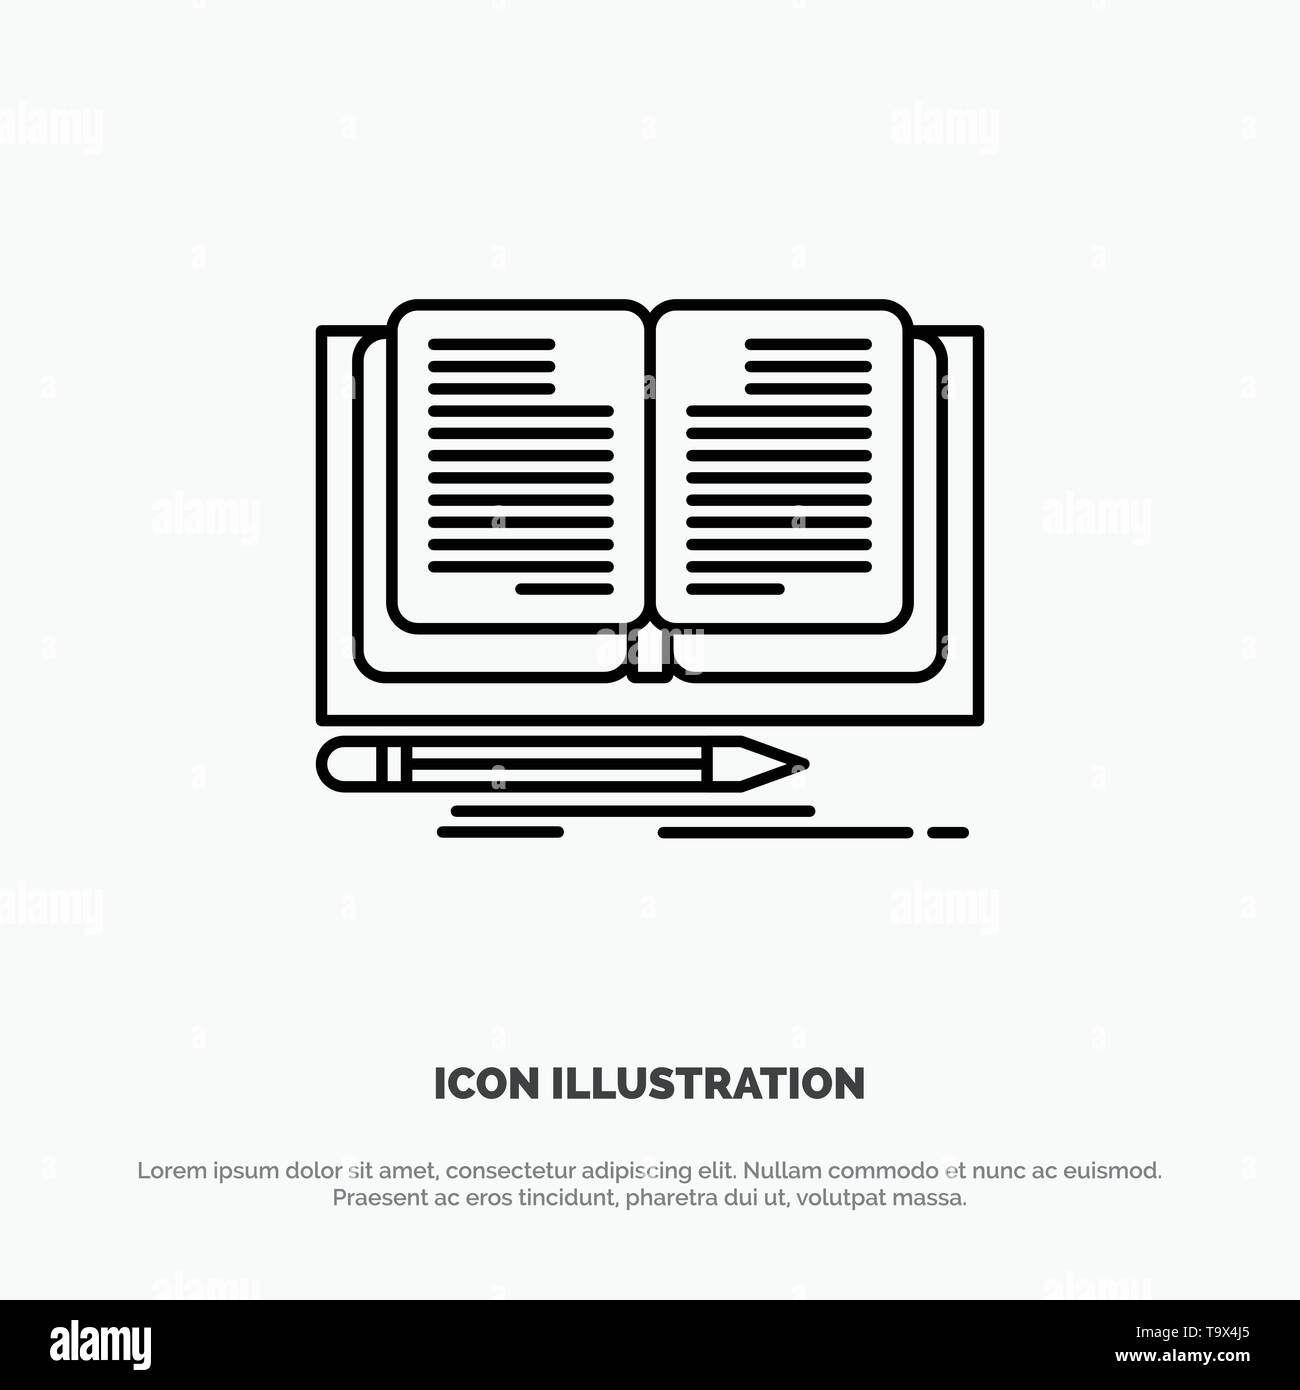 Writing, Novel, Book, Story Line Icon Vector - Stock Image